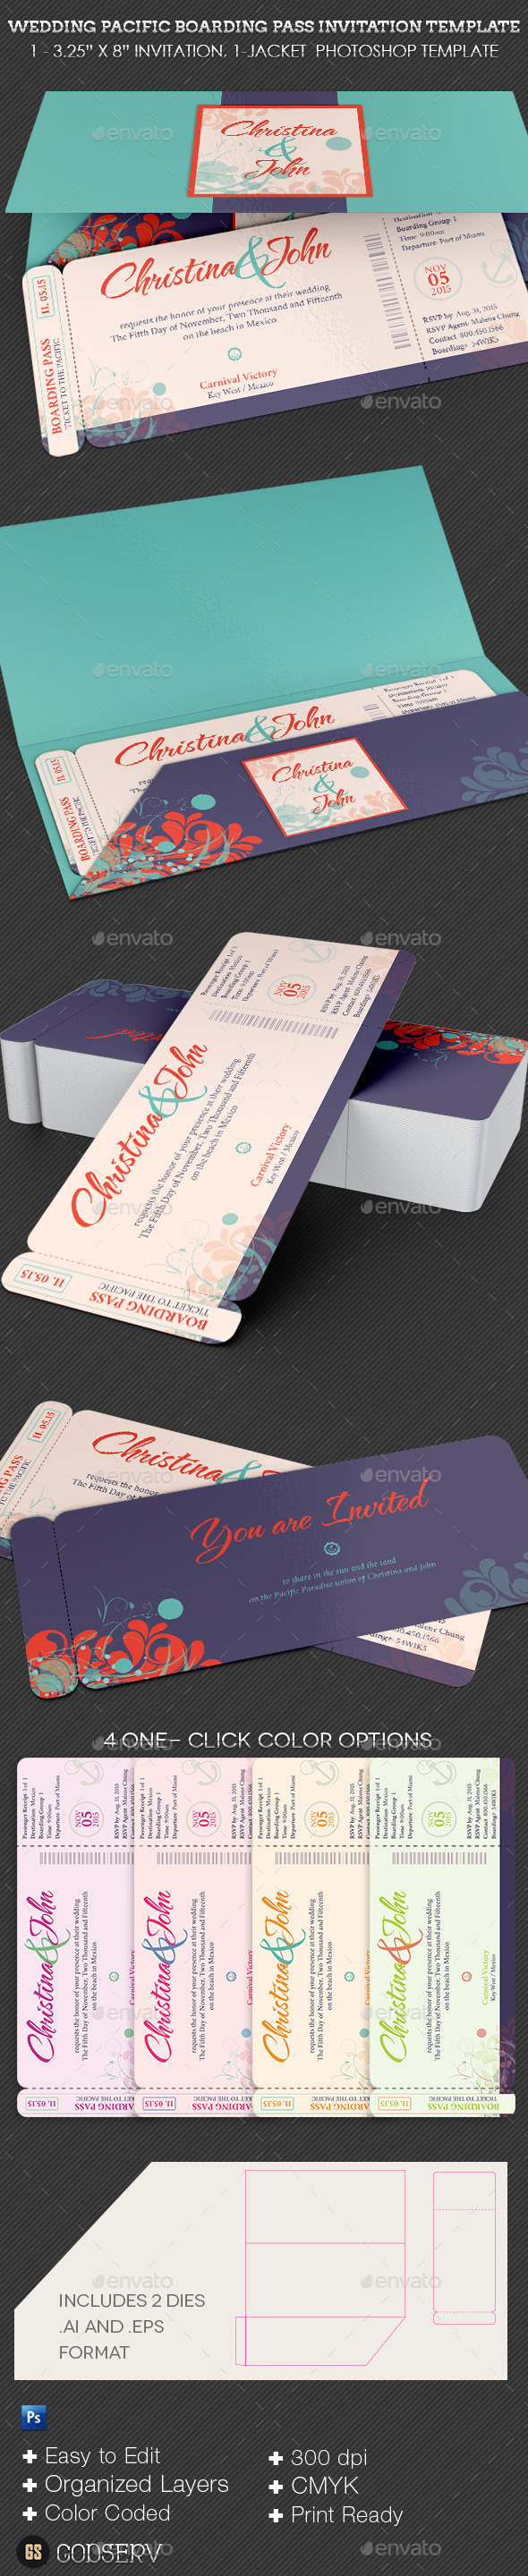 GraphicRiver Wedding Pacific Boarding Pass Invitation Template 11872647